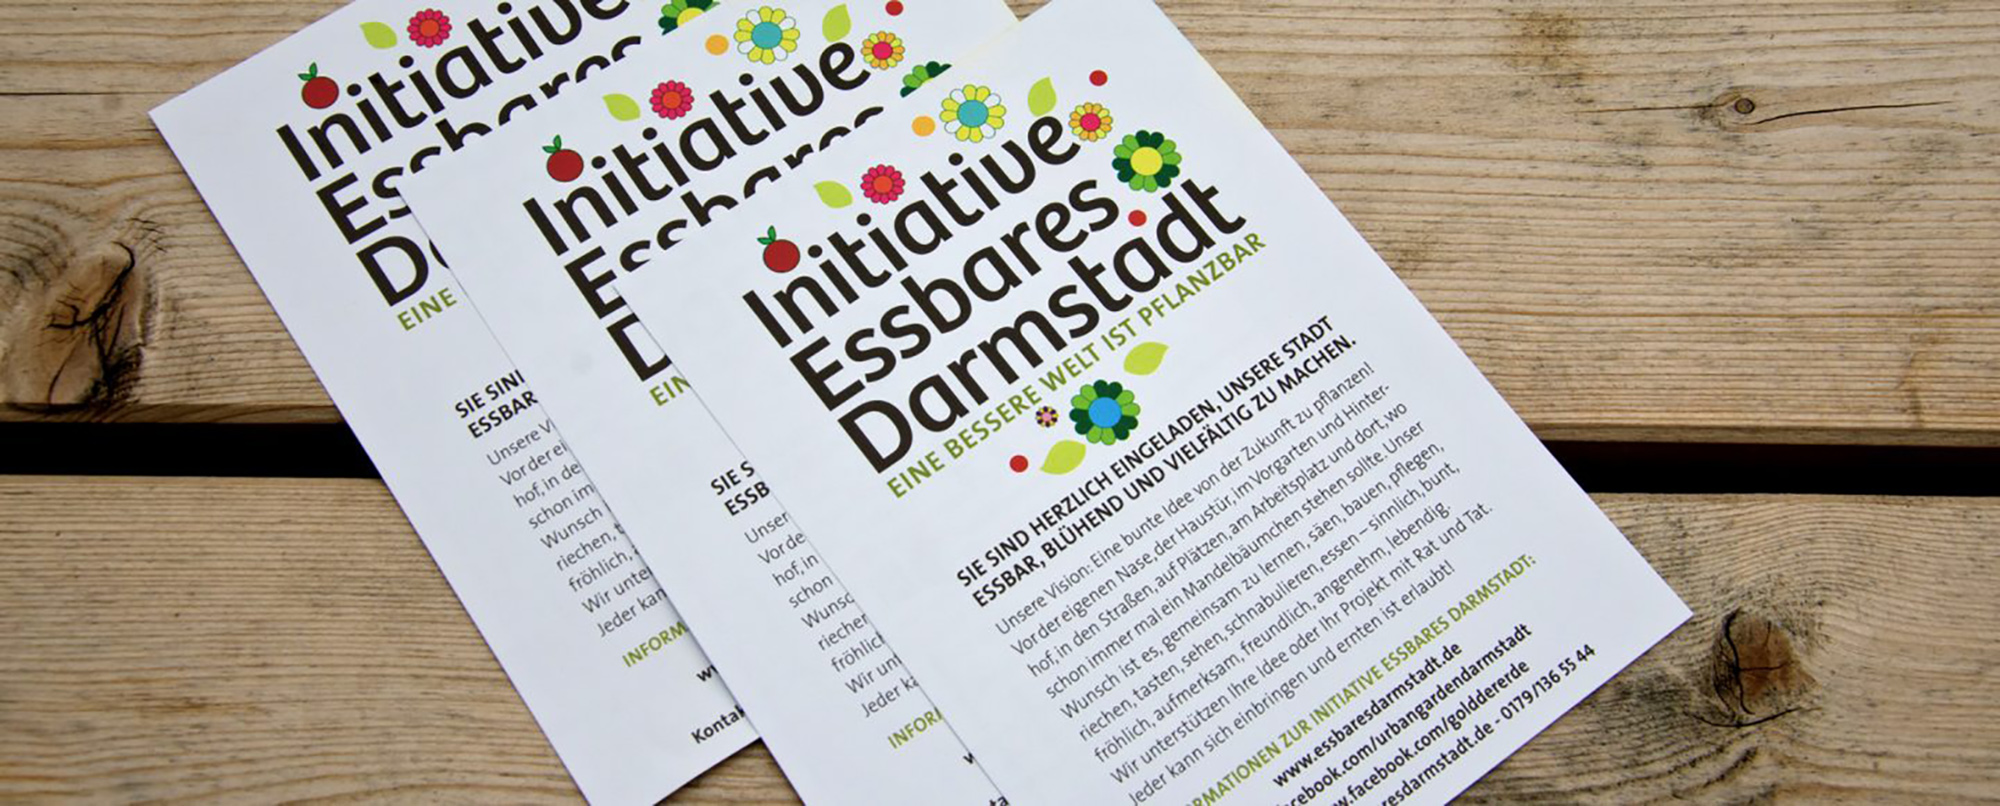 Initiative_Essbares_Darmstadt